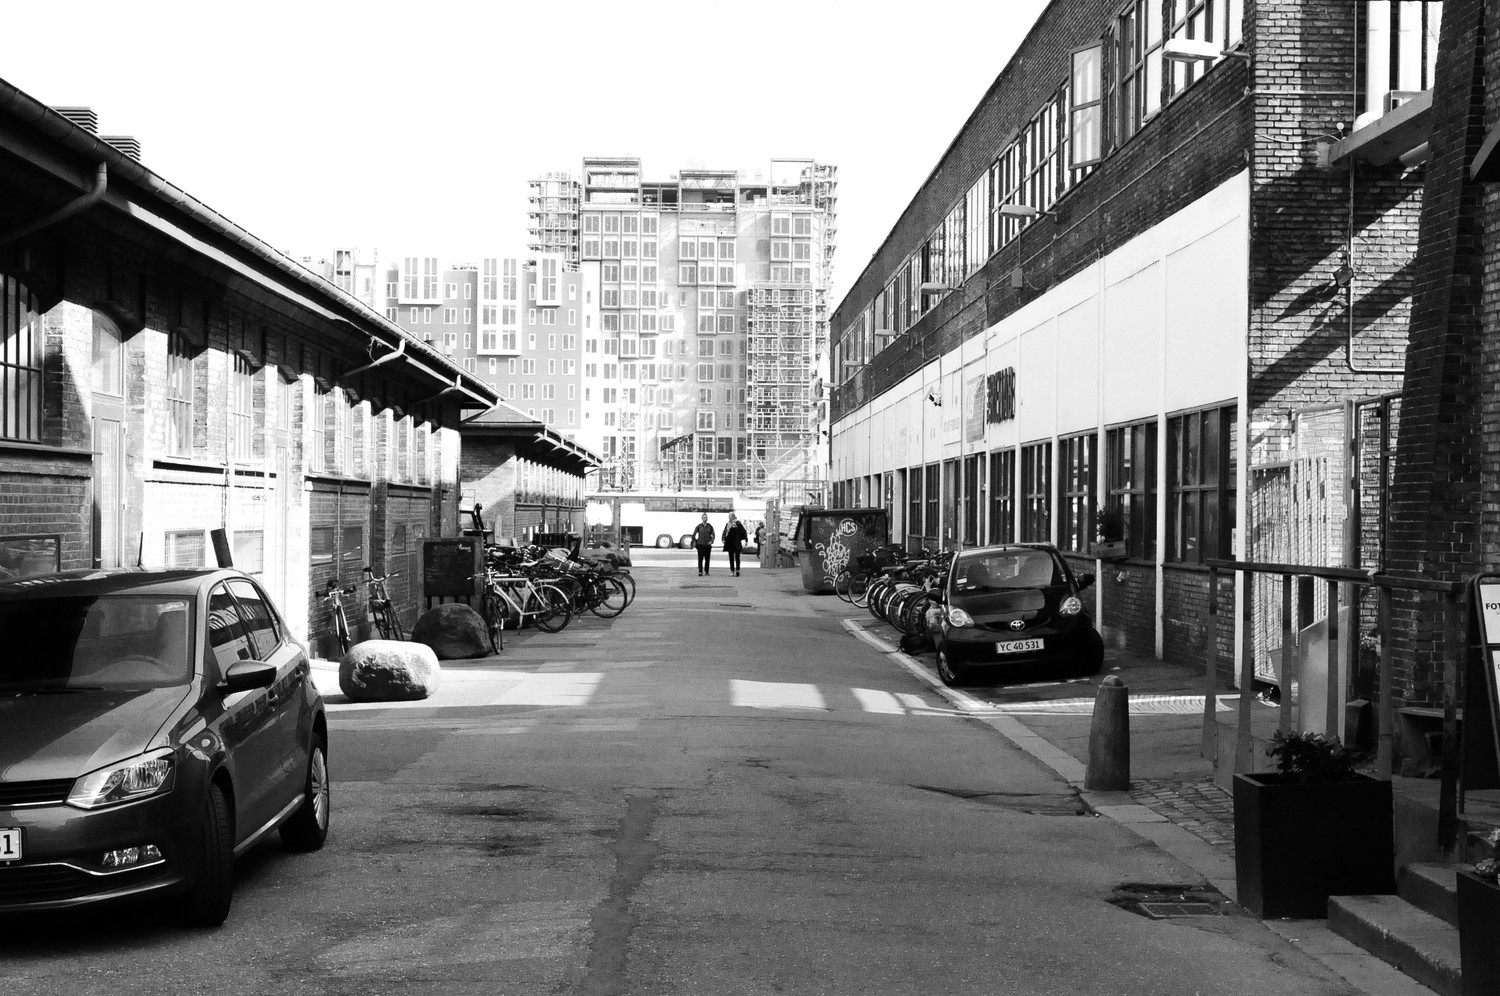 Old warehouses lining the streets of the Meatpacking District, looking south towards the modern harbour edge.